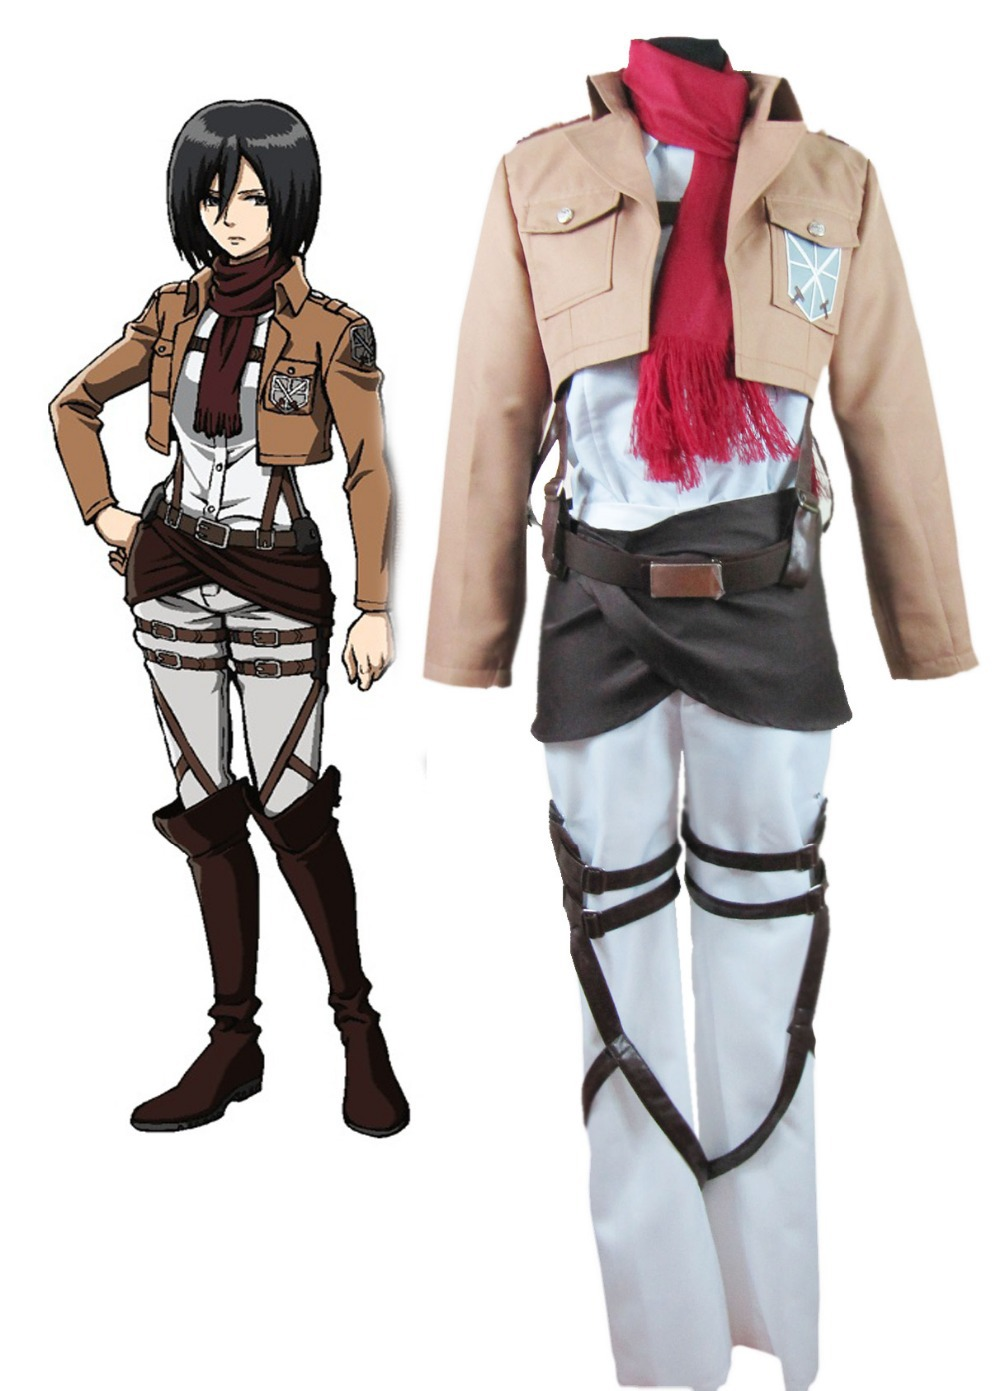 Free Shipping Attack on Titan Mikasa Ackerman Trainee Class Uniform Anime Cosplay Costume